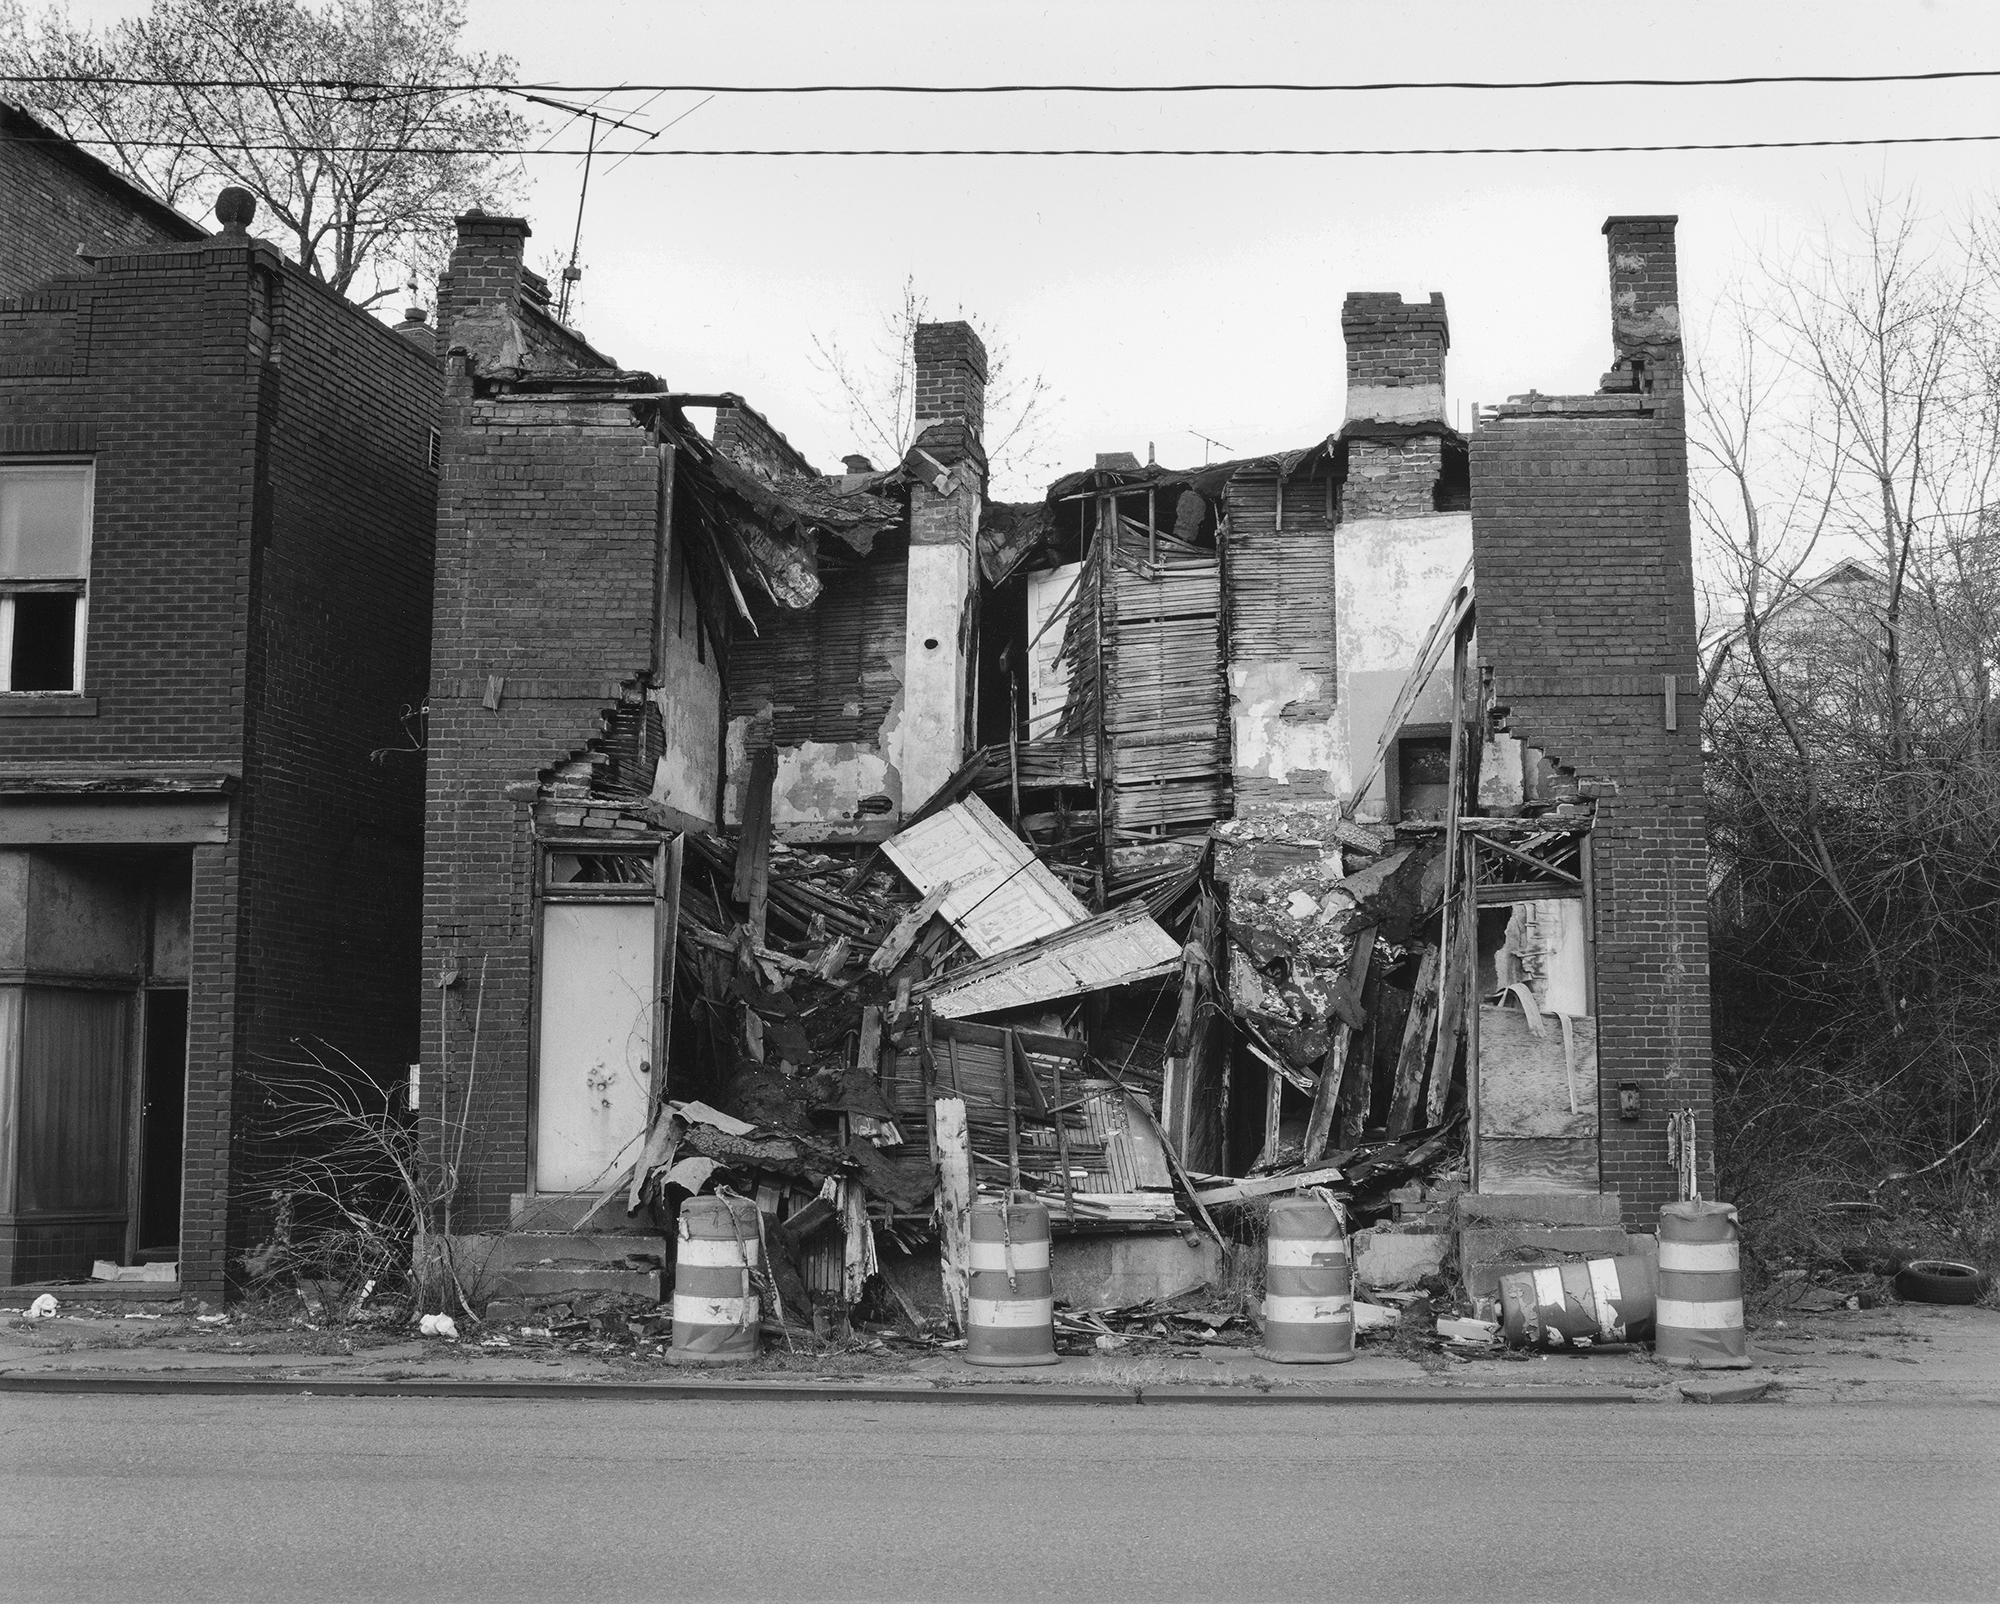 LaToya Ruby Frazier, Home on Braddock Avenue, 2007, from The Notion of Family (Aperture, 2014)